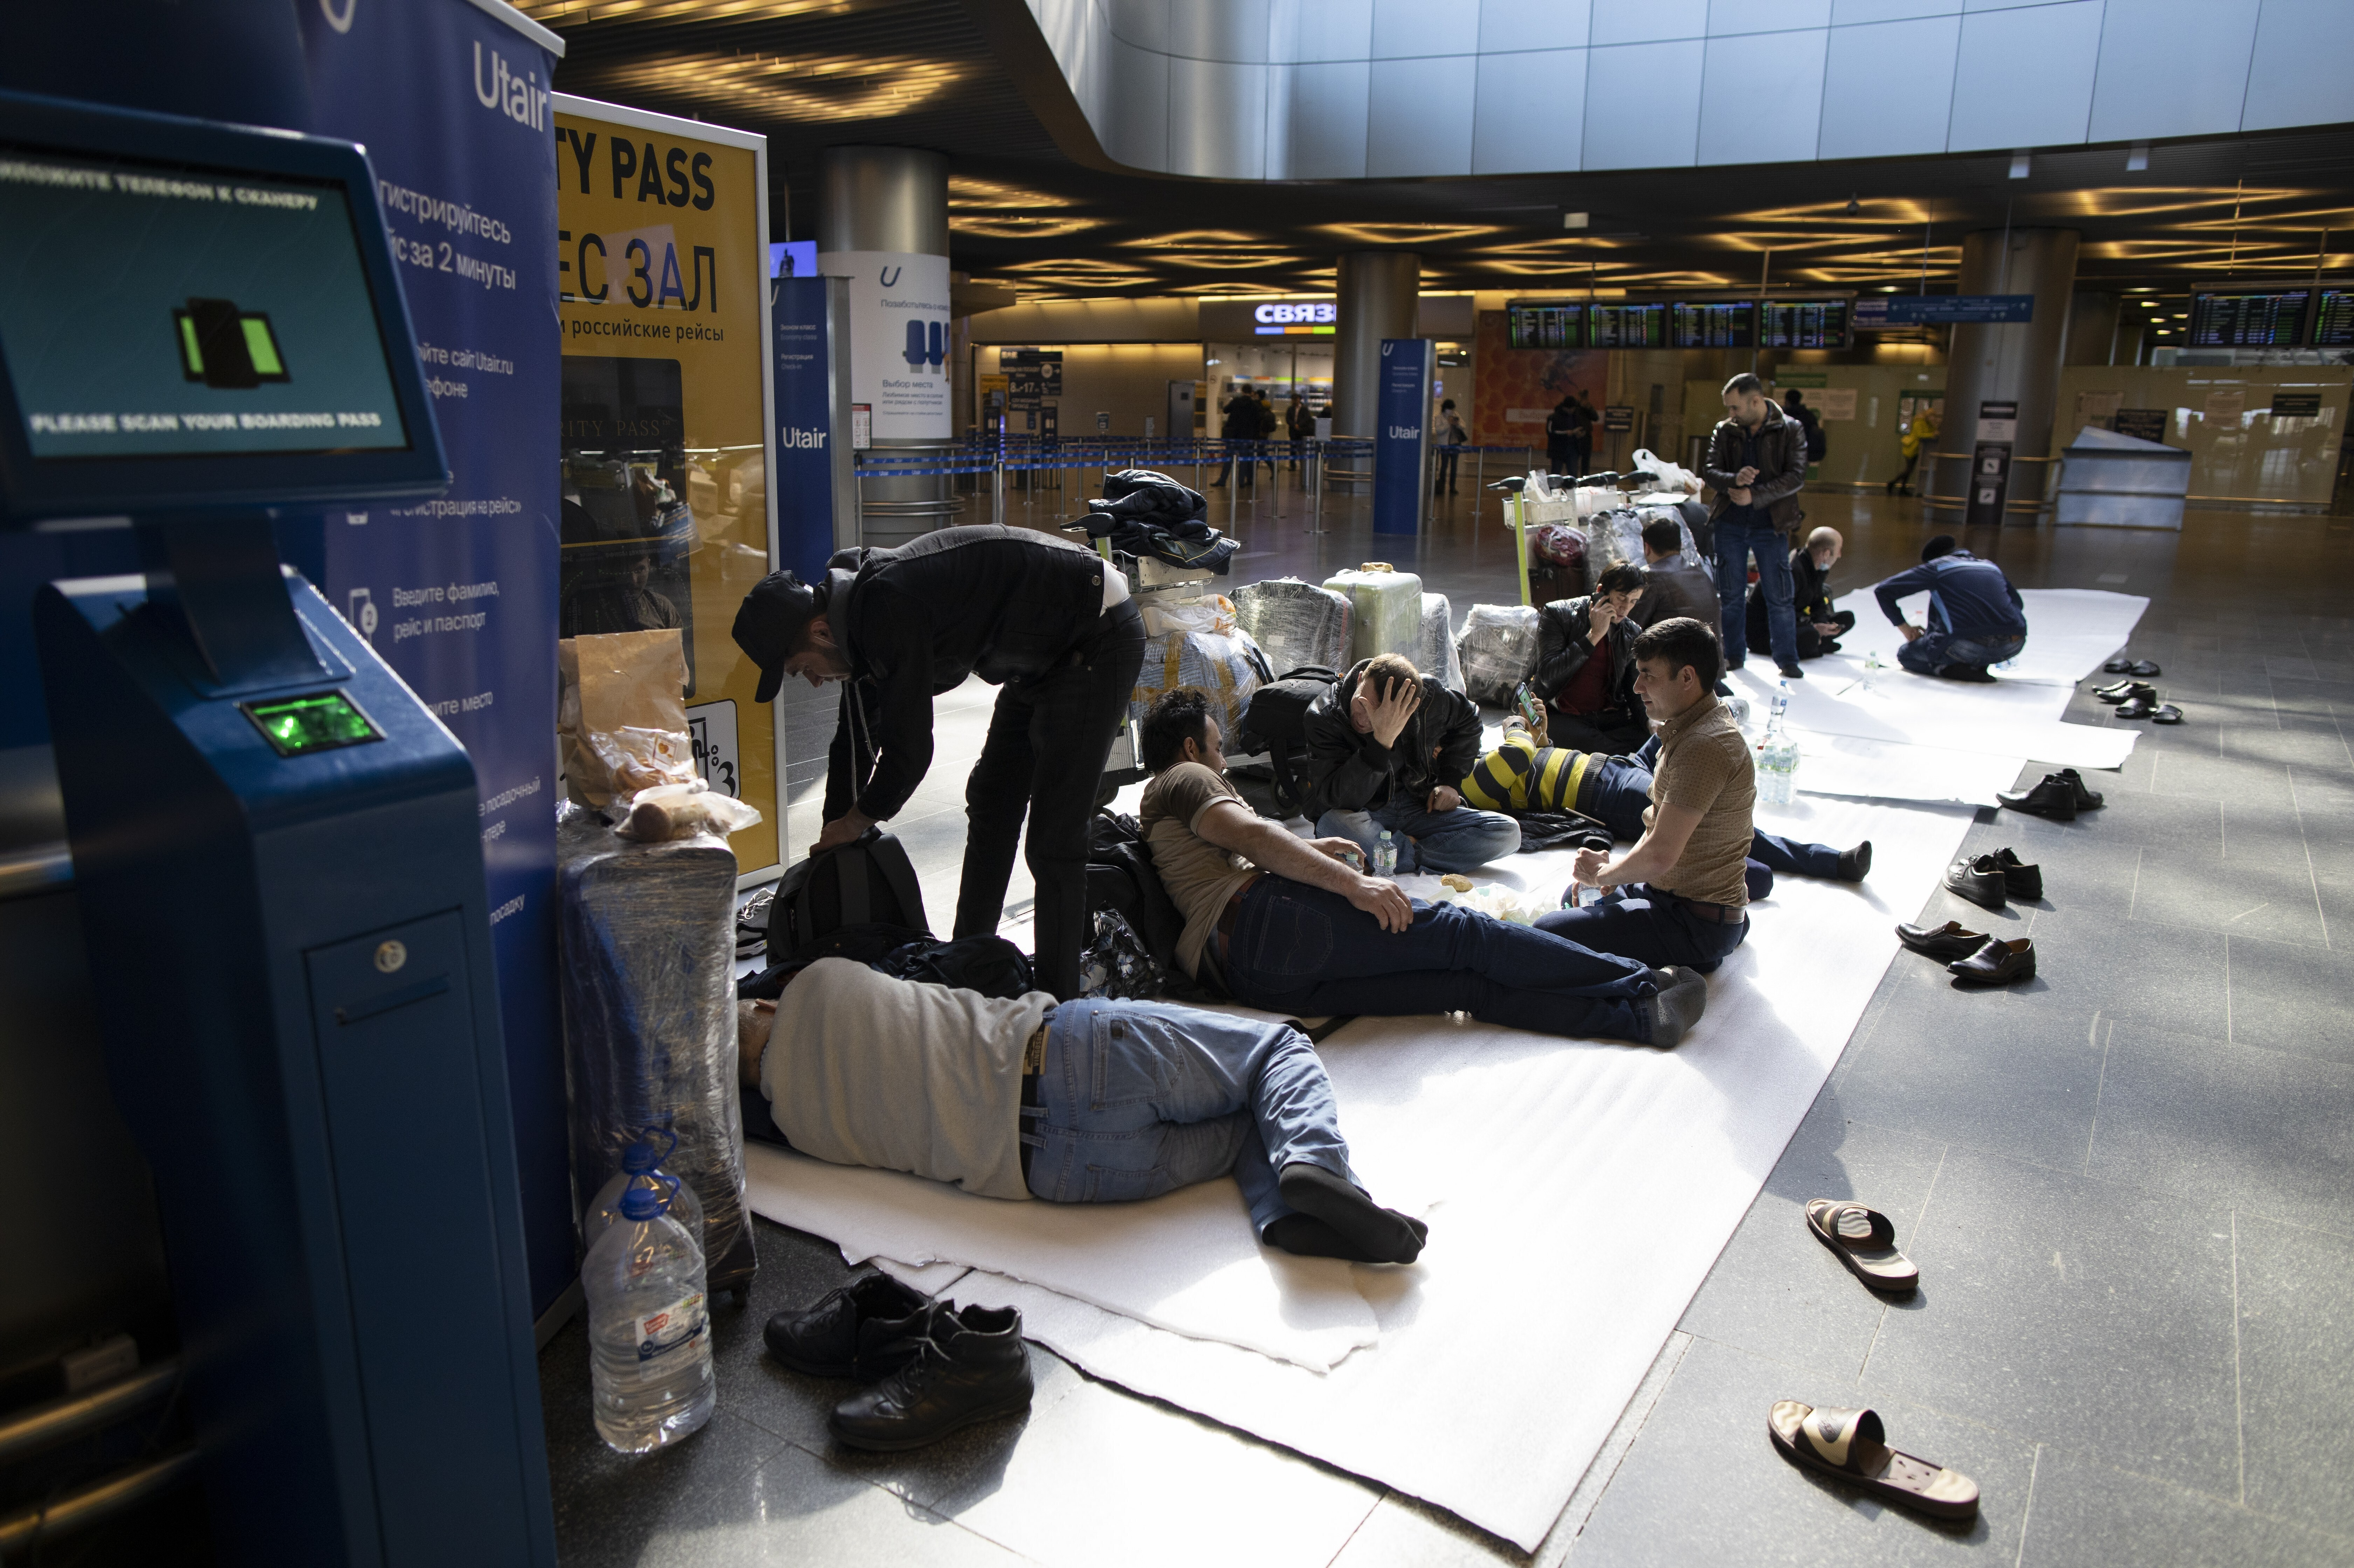 Tajikistan residents rest on the floor while waiting for a plane to their home country at the Vnukovo international airport in Russia amid the virus pandemic. Source: AAP